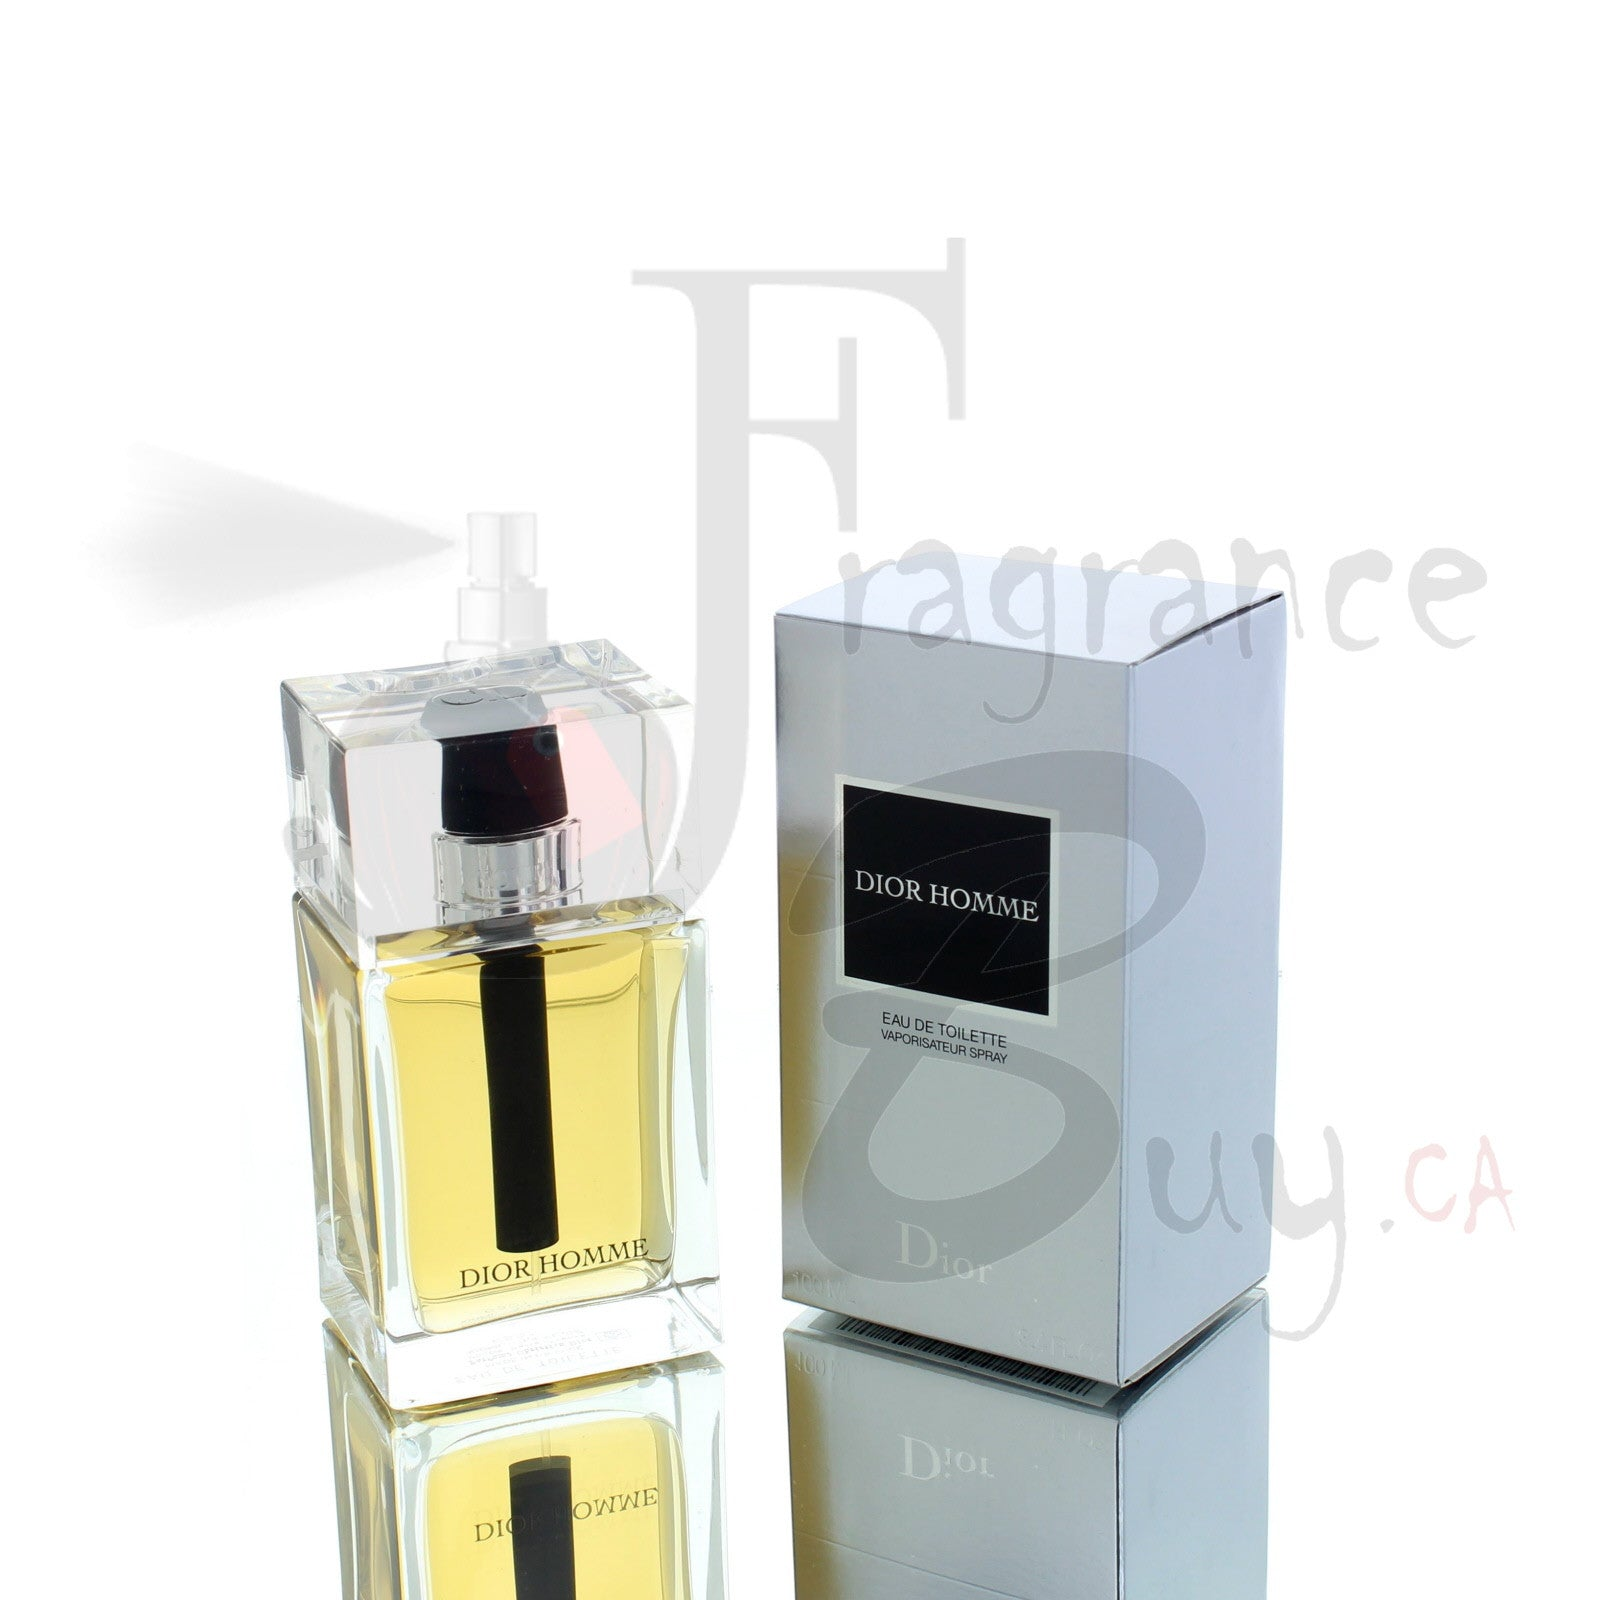 Dior Homme by Christian Dior For Man